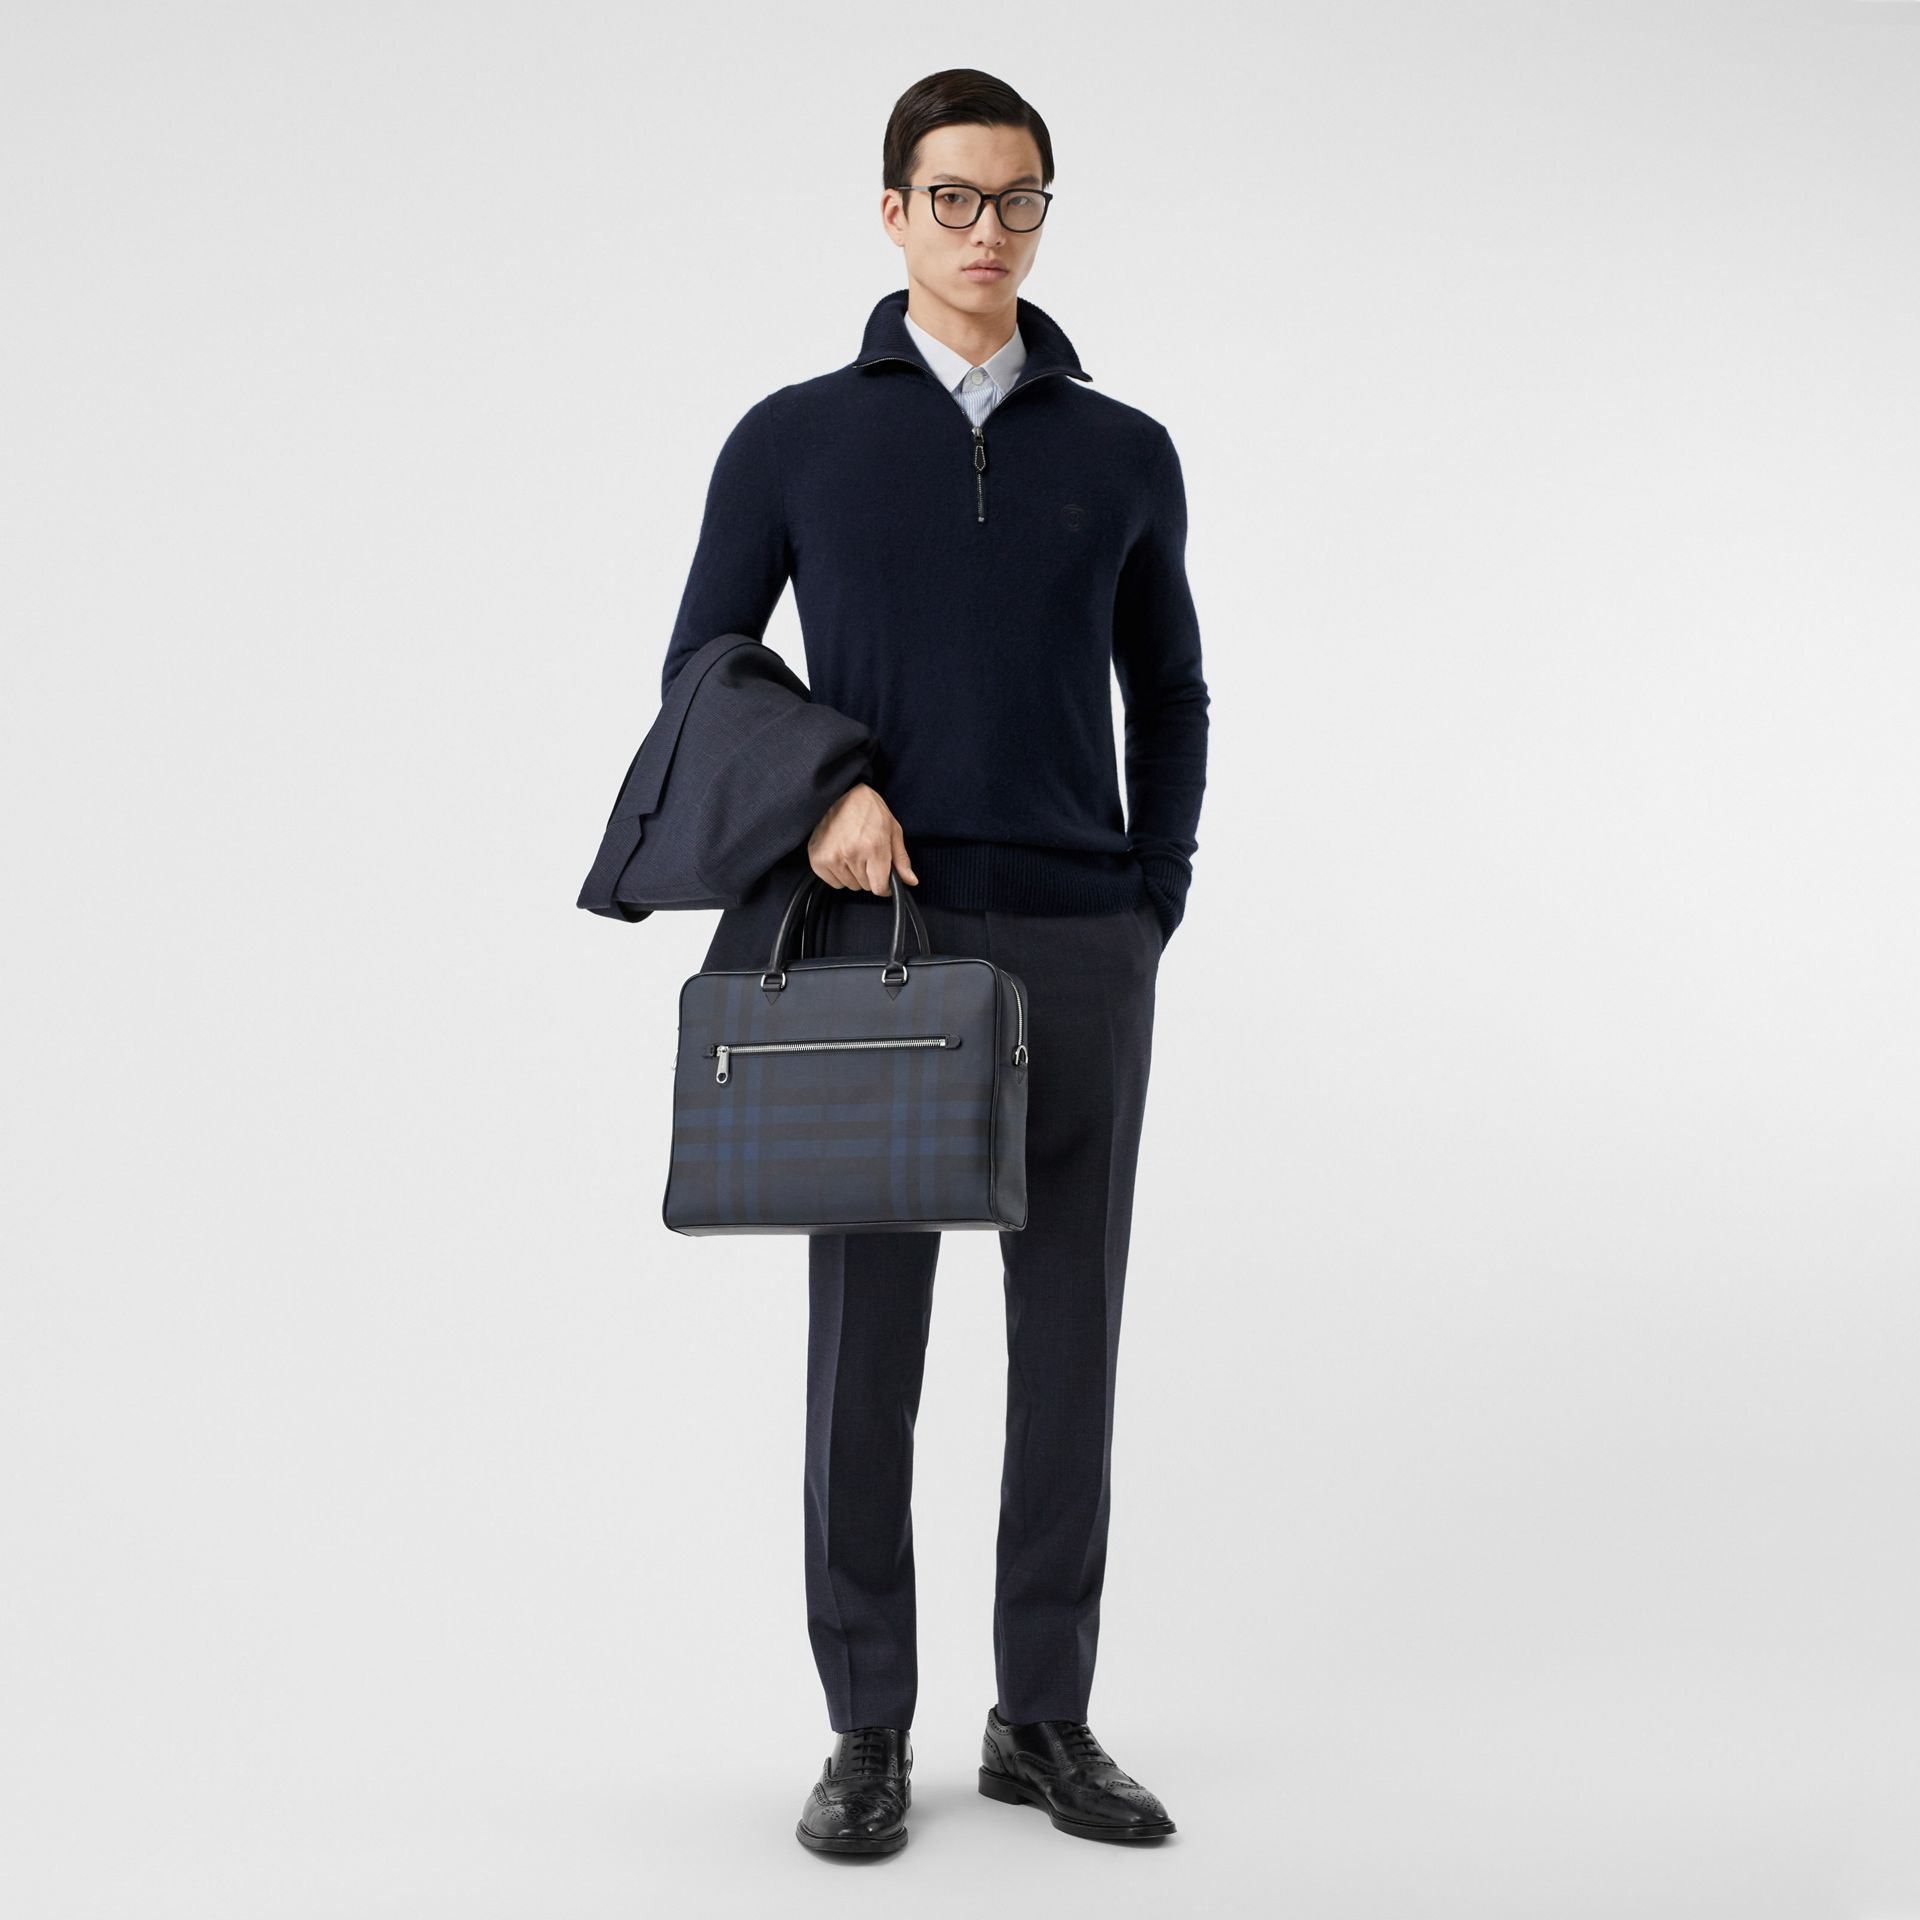 Monogram Motif Cashmere Funnel Neck Sweater in Navy - Men | Burberry Hong Kong S.A.R - gallery image 4